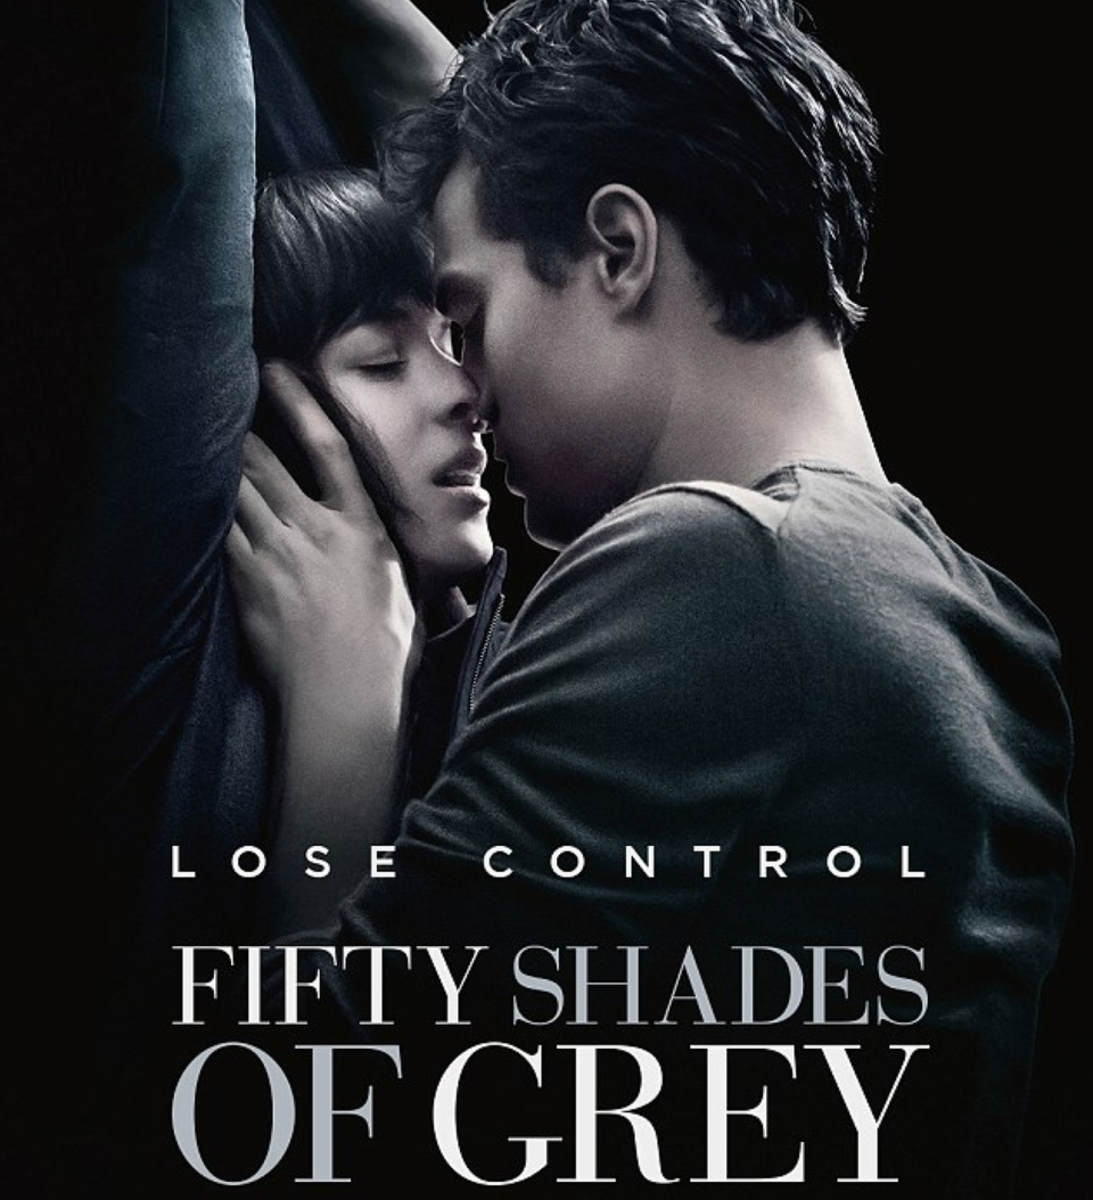 50 Shades, After and What We Learn From Toxic Relationships